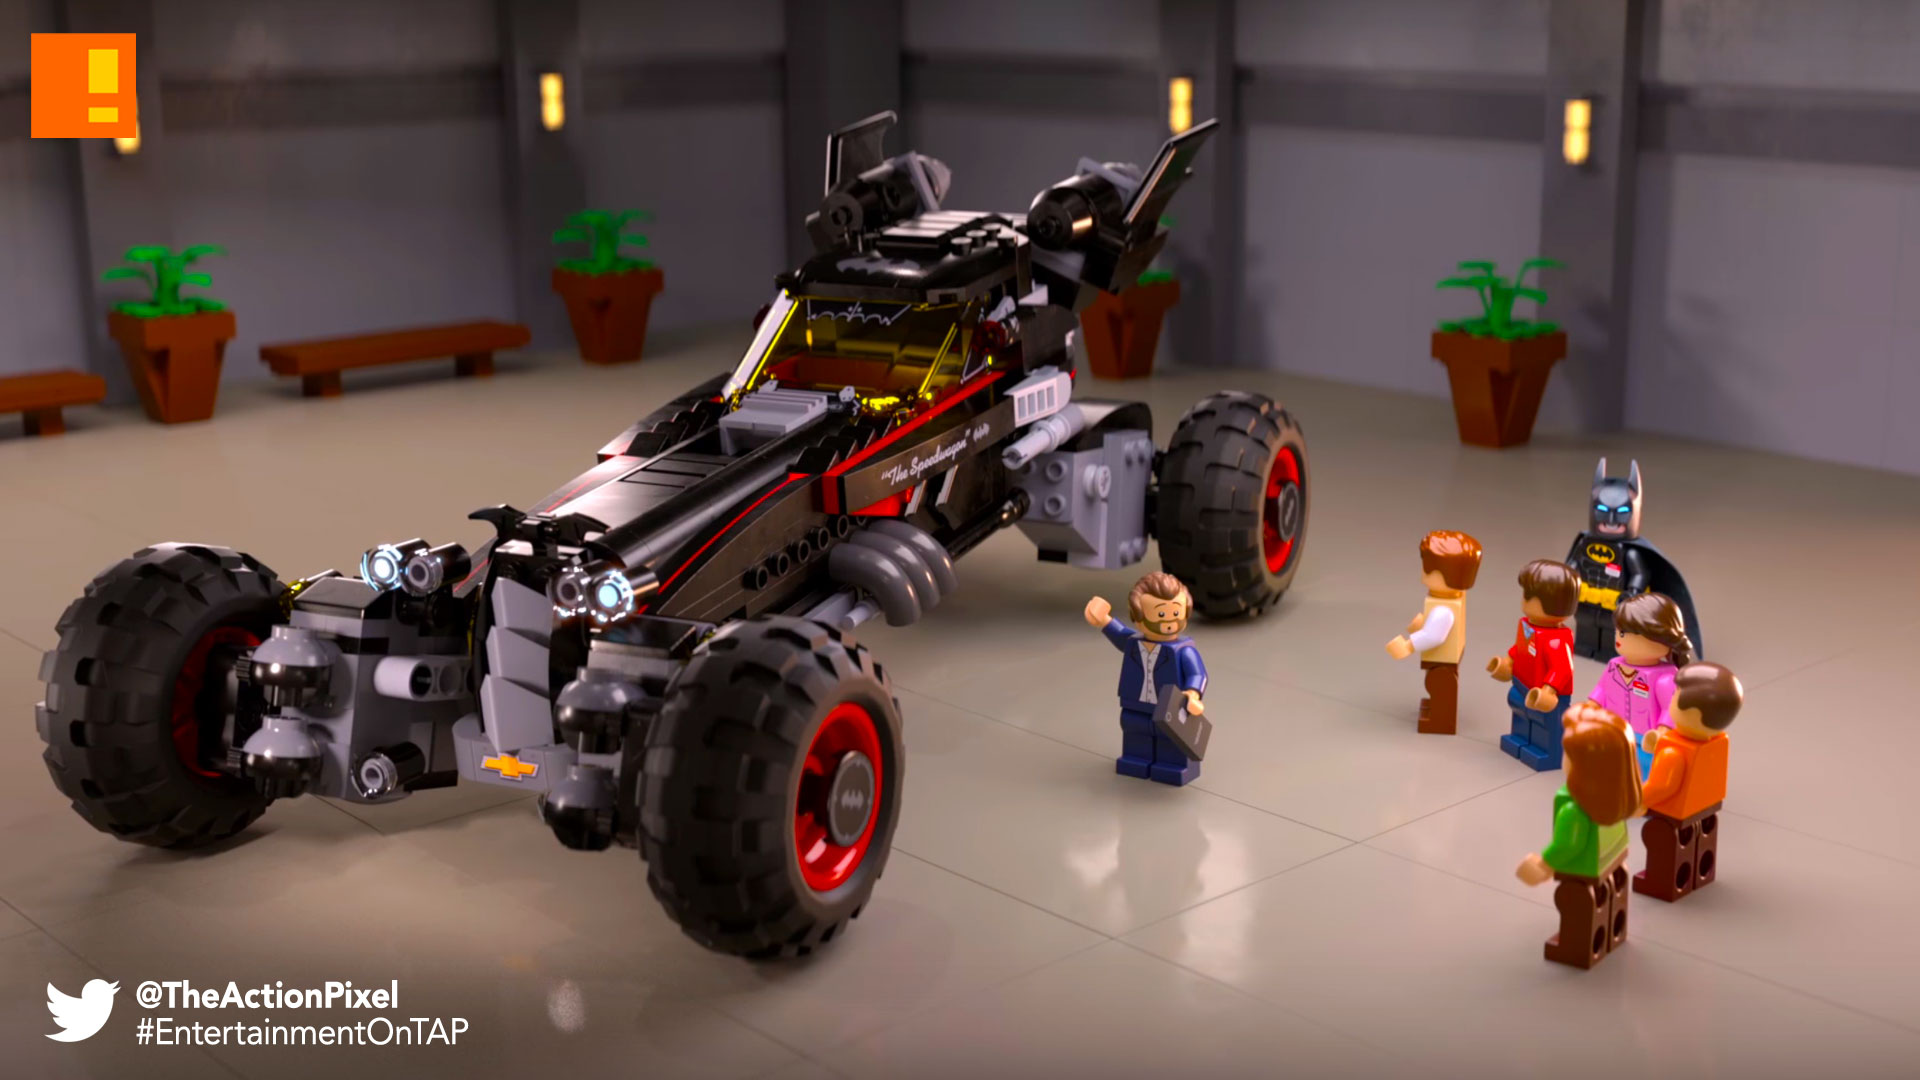 batman, lego,chevy, chevrolet, batman, lego batman, lego batman the movie, dc comics, warner animation group, wag, warner bros., dc comics,